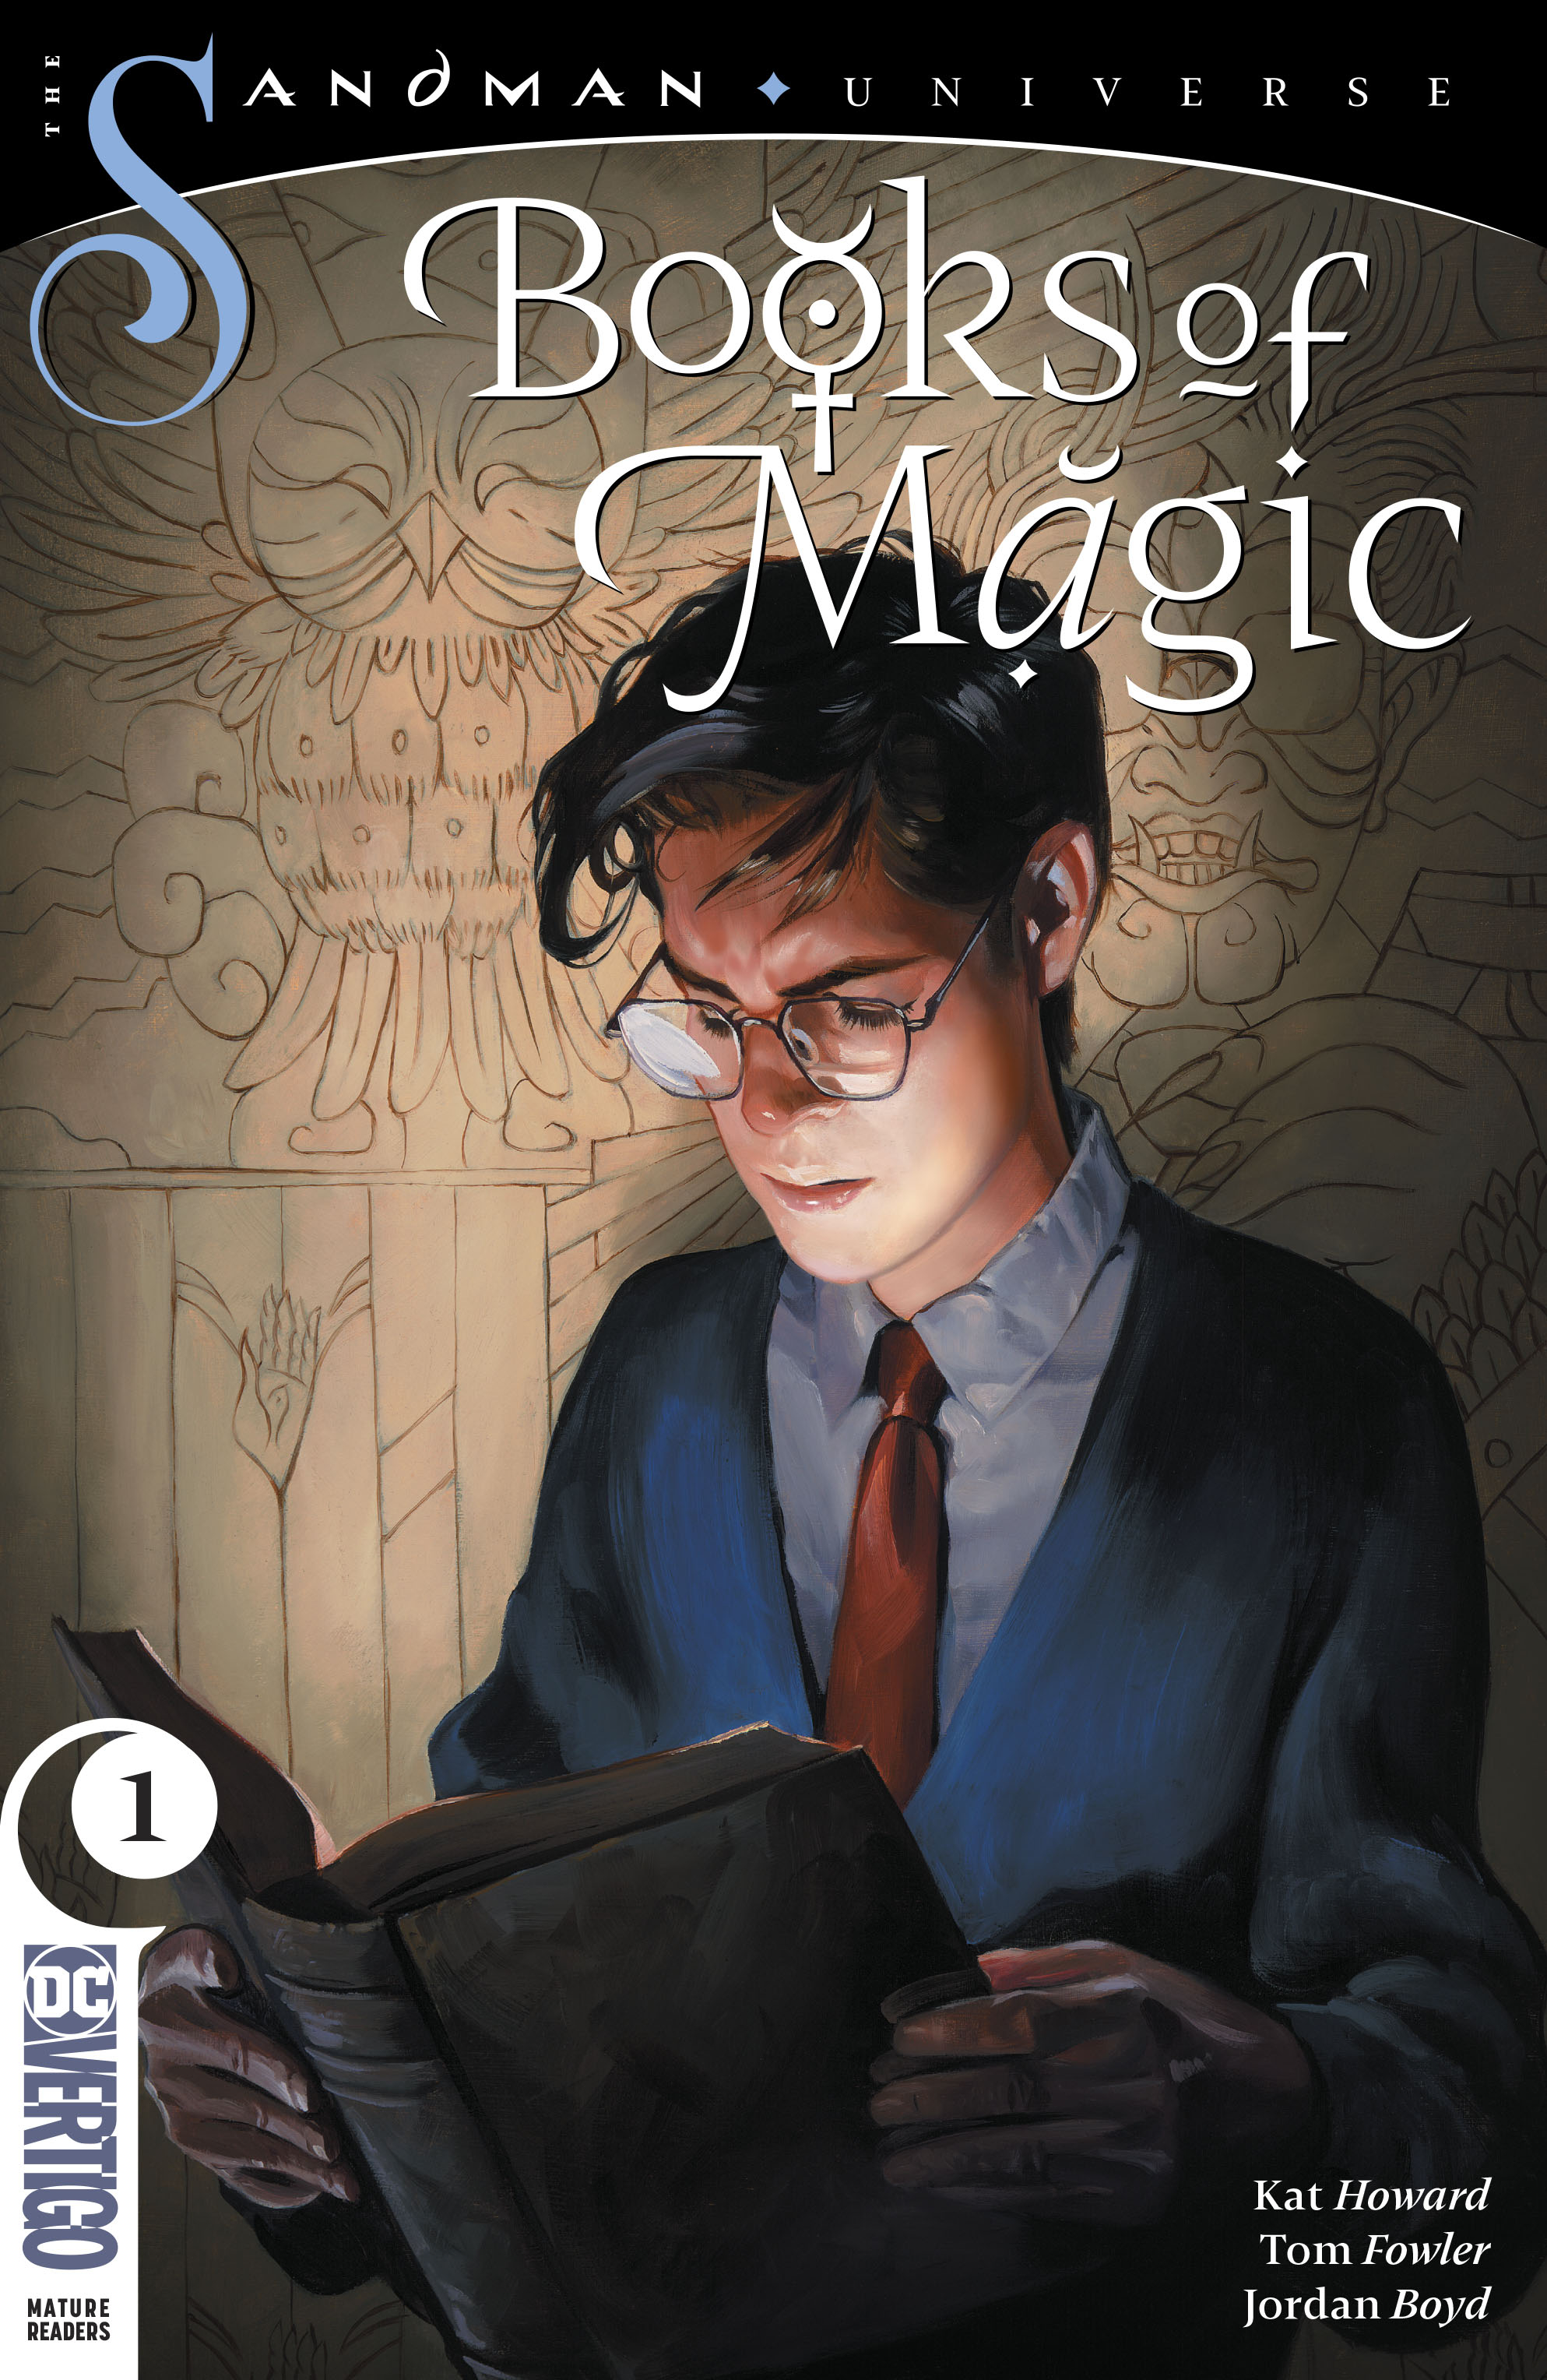 BOOKS OF MAGIC, Books Of Magic #1, tim hunter, sandman, neil gaiman, gaiman, kat howard, tom fowler